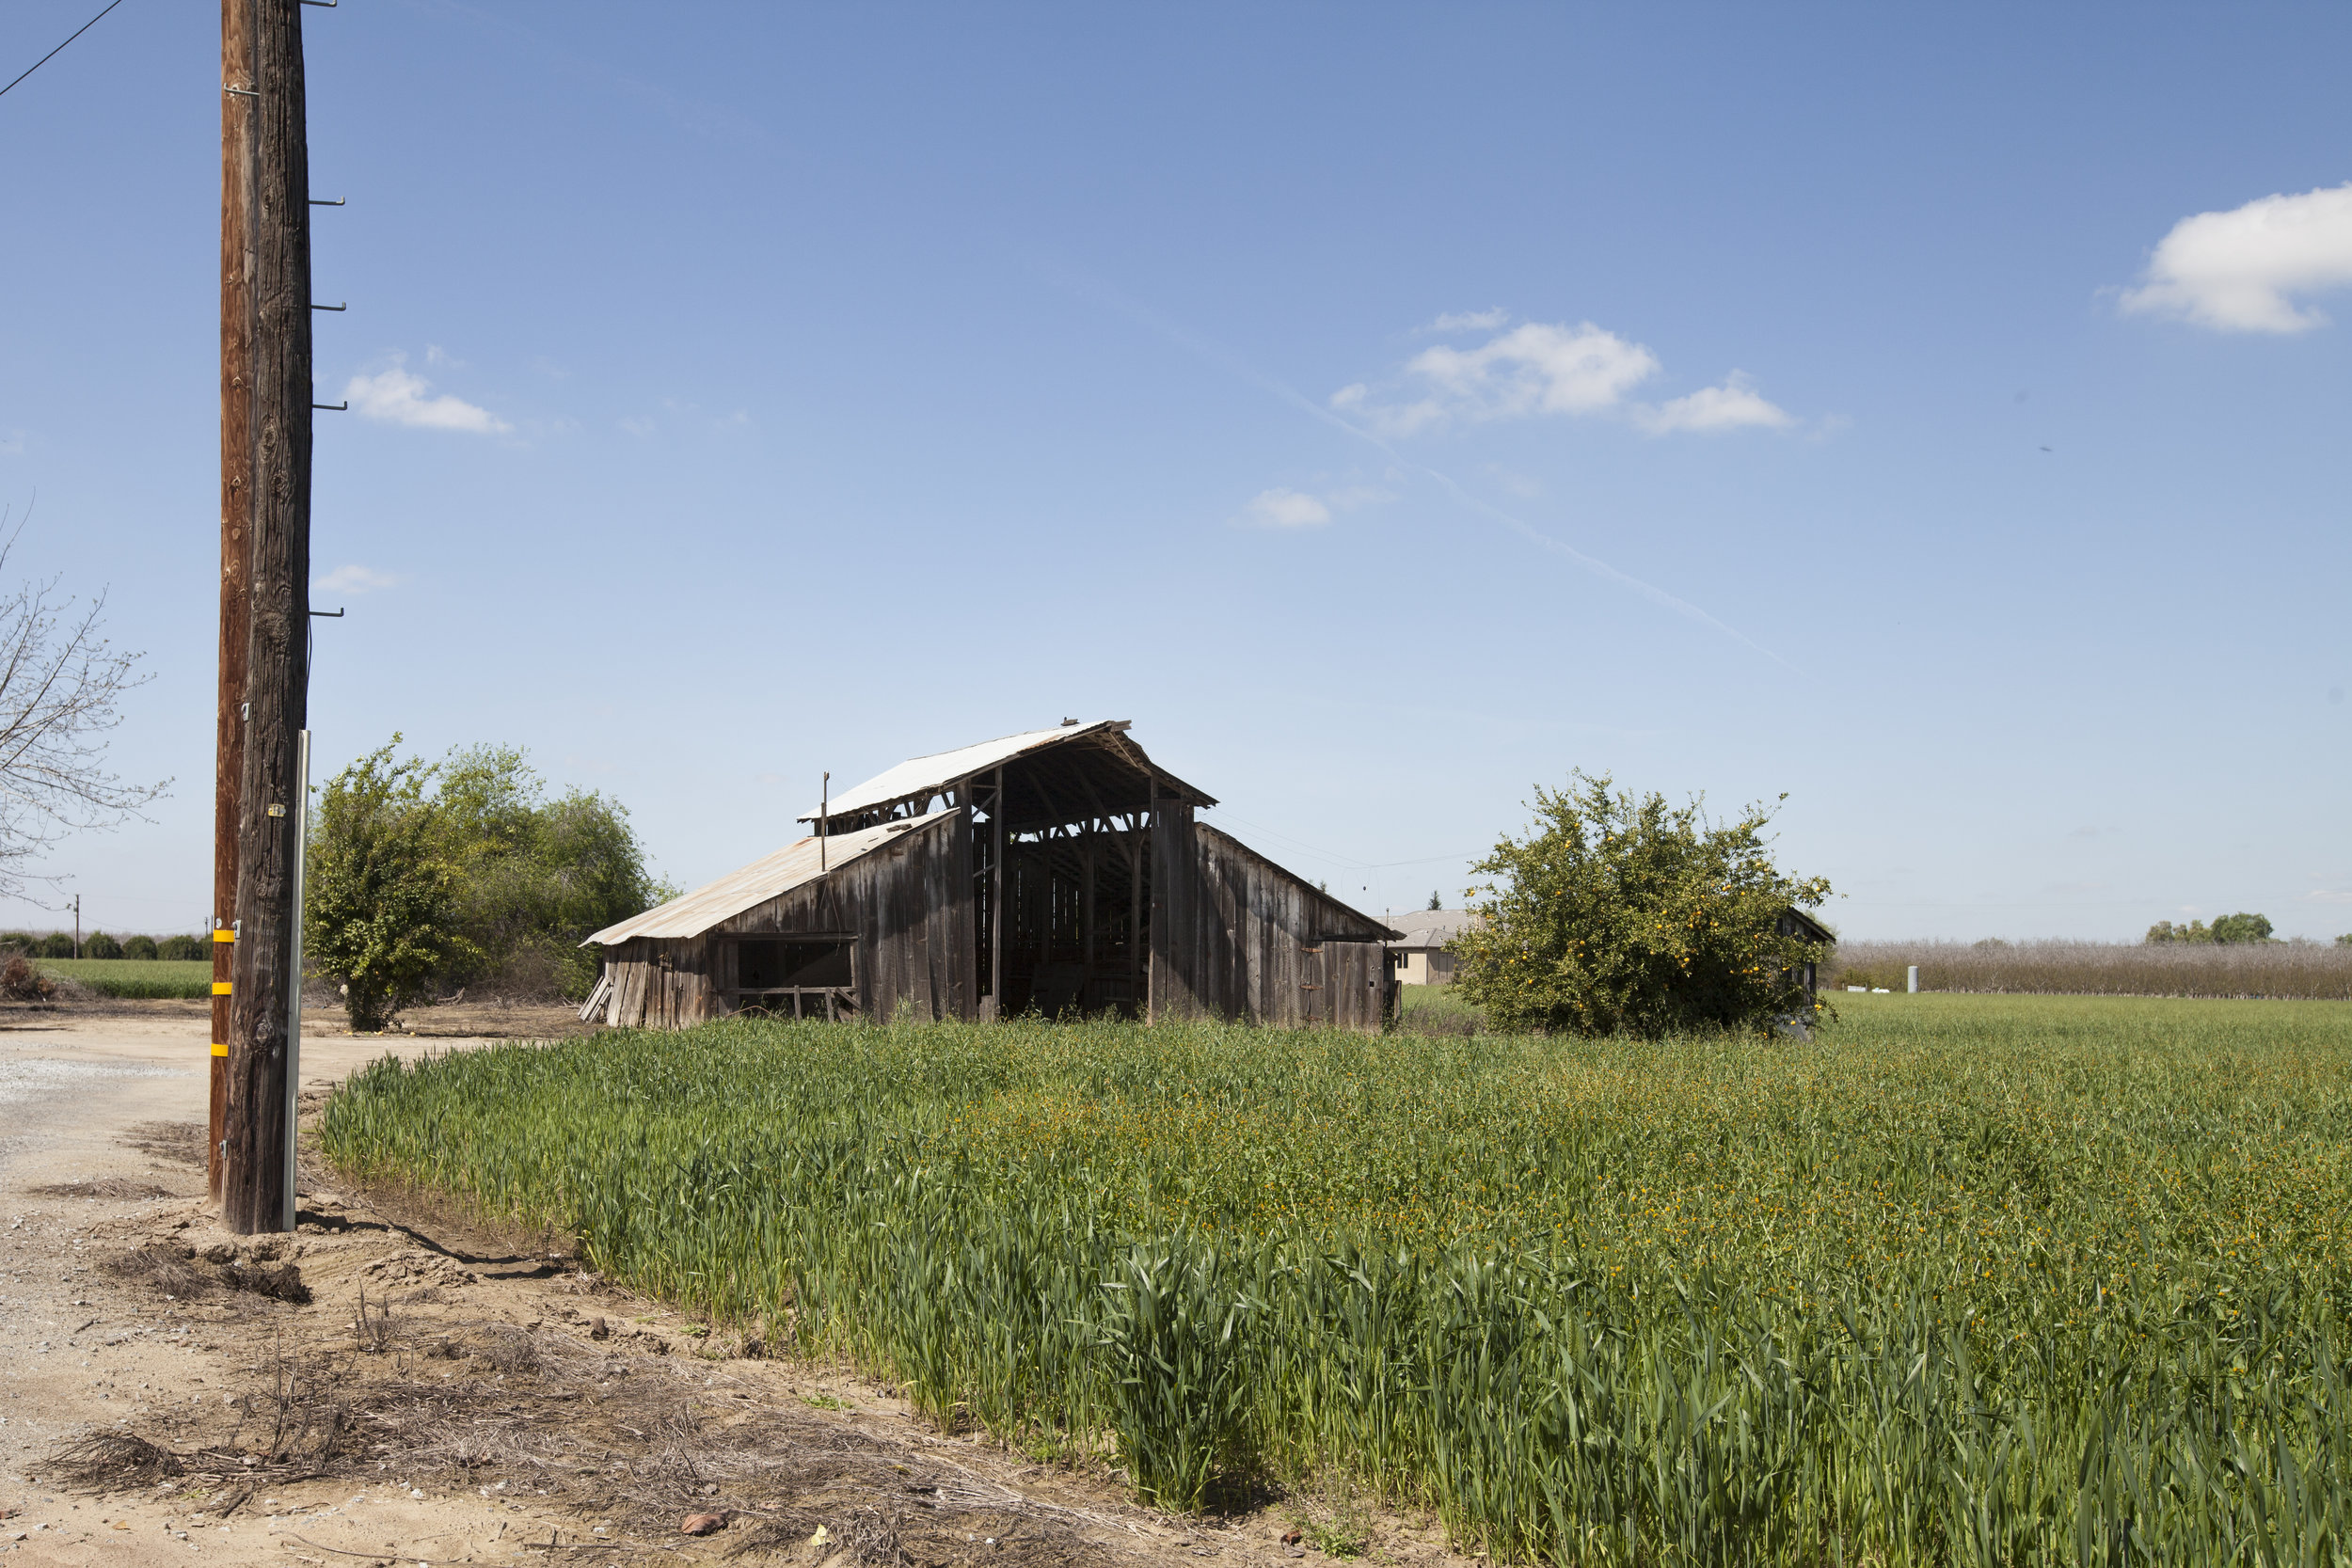 We took inspiration from the landscape around the school. Many beautiful vistas with old barn structures surround the building.